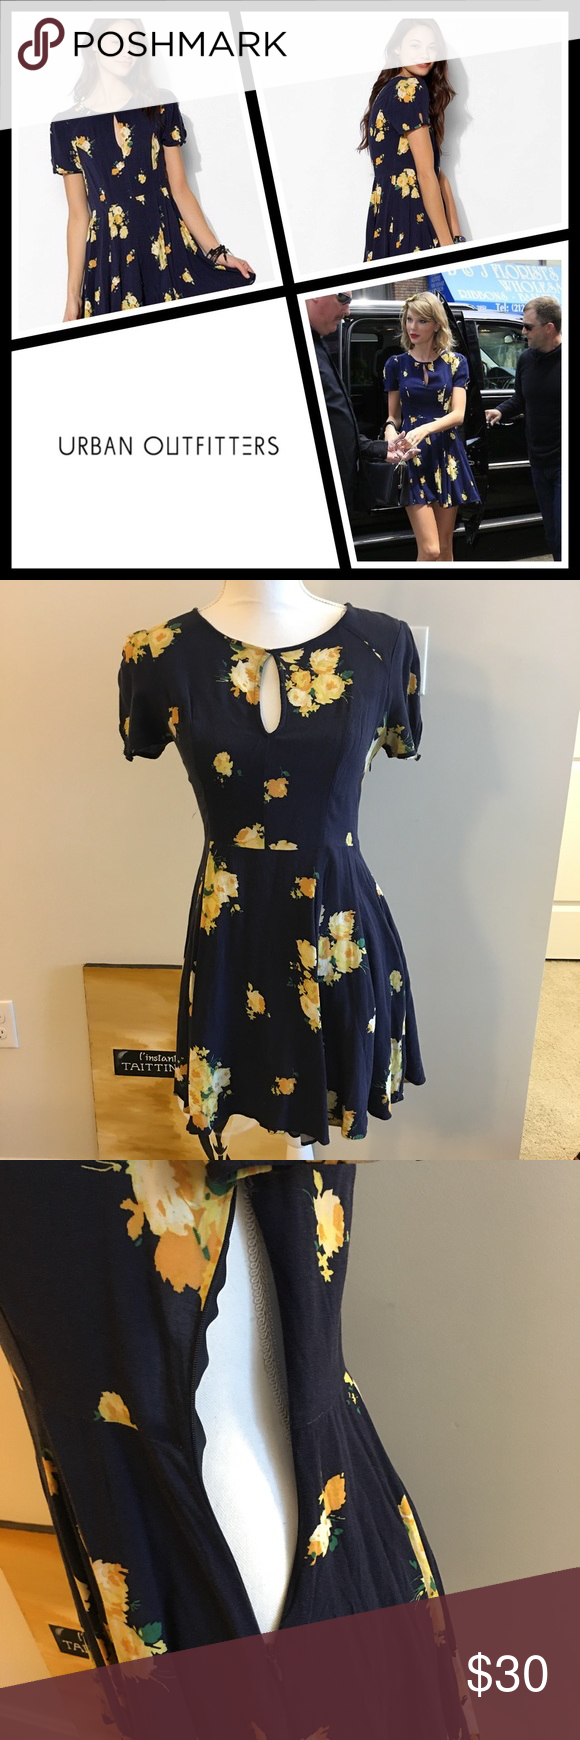 Kimchi Blue Ruby Keyhole Fit Flare Dress Excellent condition super soft and comfortable size 4 - 100% rayon - from Urban Outfitters Kimchi Blue line Urban Outfitters Dresses